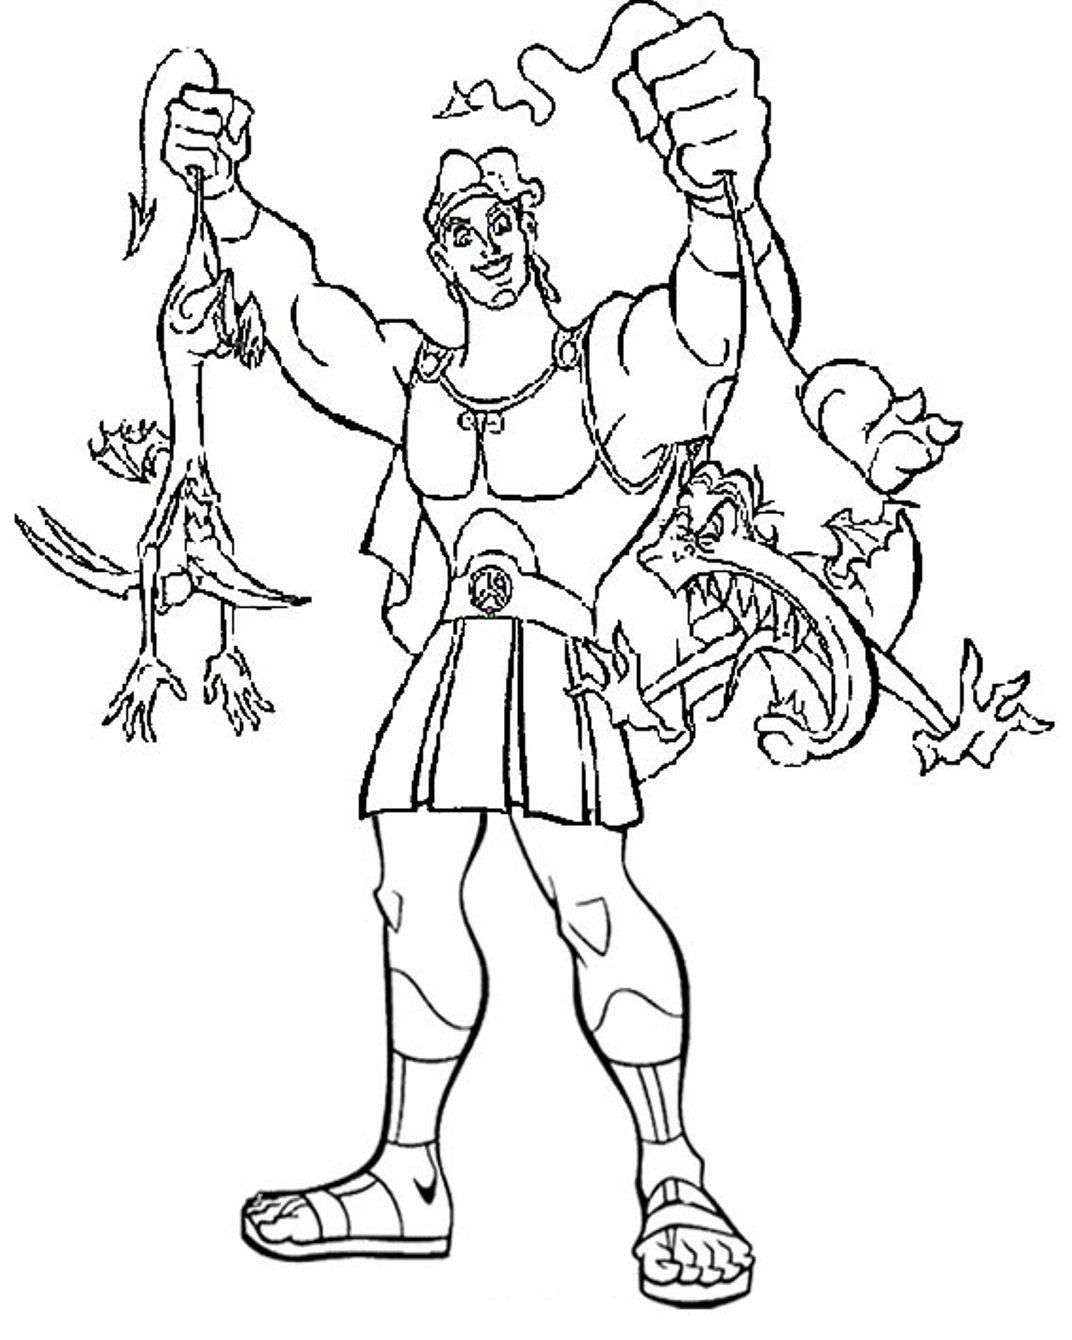 Printable Hercules Coloring Pages | Coloring Me - Coloring Home